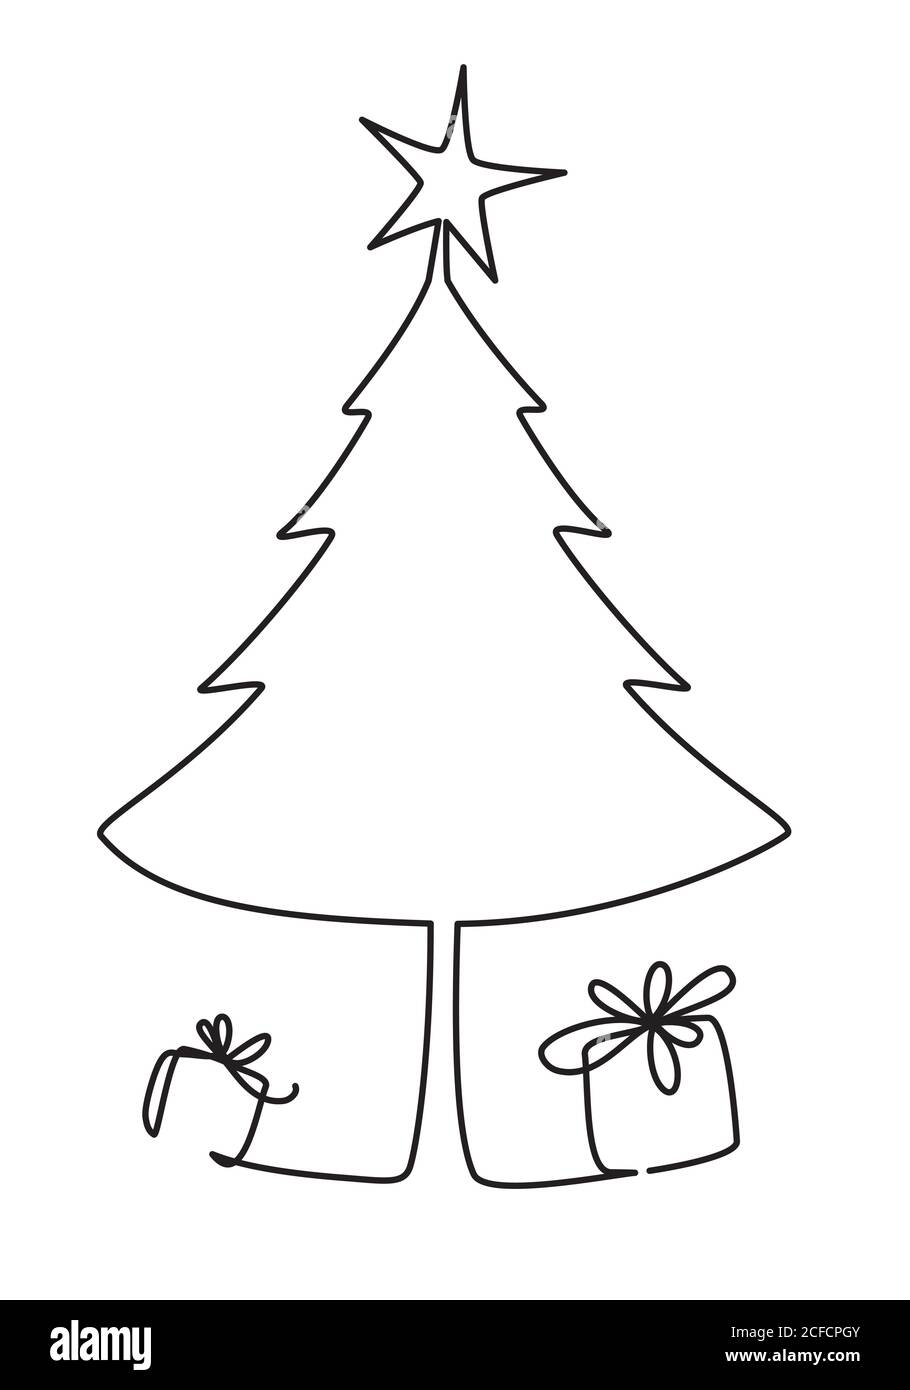 Tree Line Drawing Black And White High Resolution Stock Photography And Images Alamy